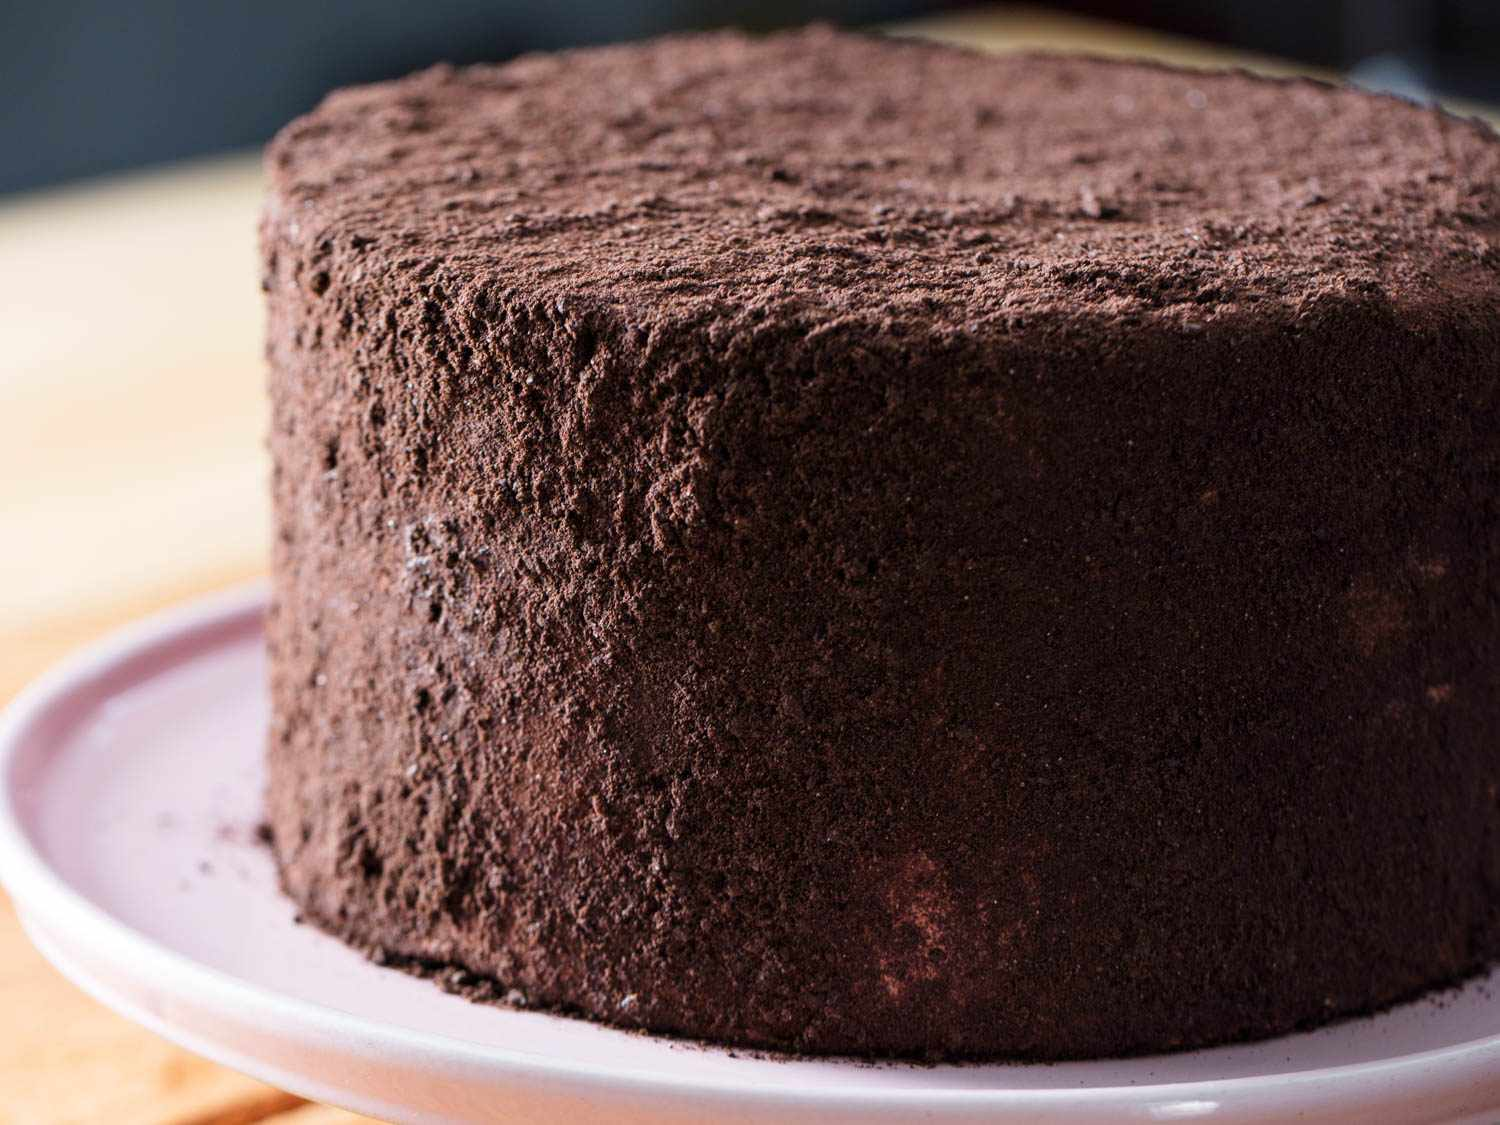 Oreo cookie-crumb coated three-layer Devil's food cake on pink cake stand.